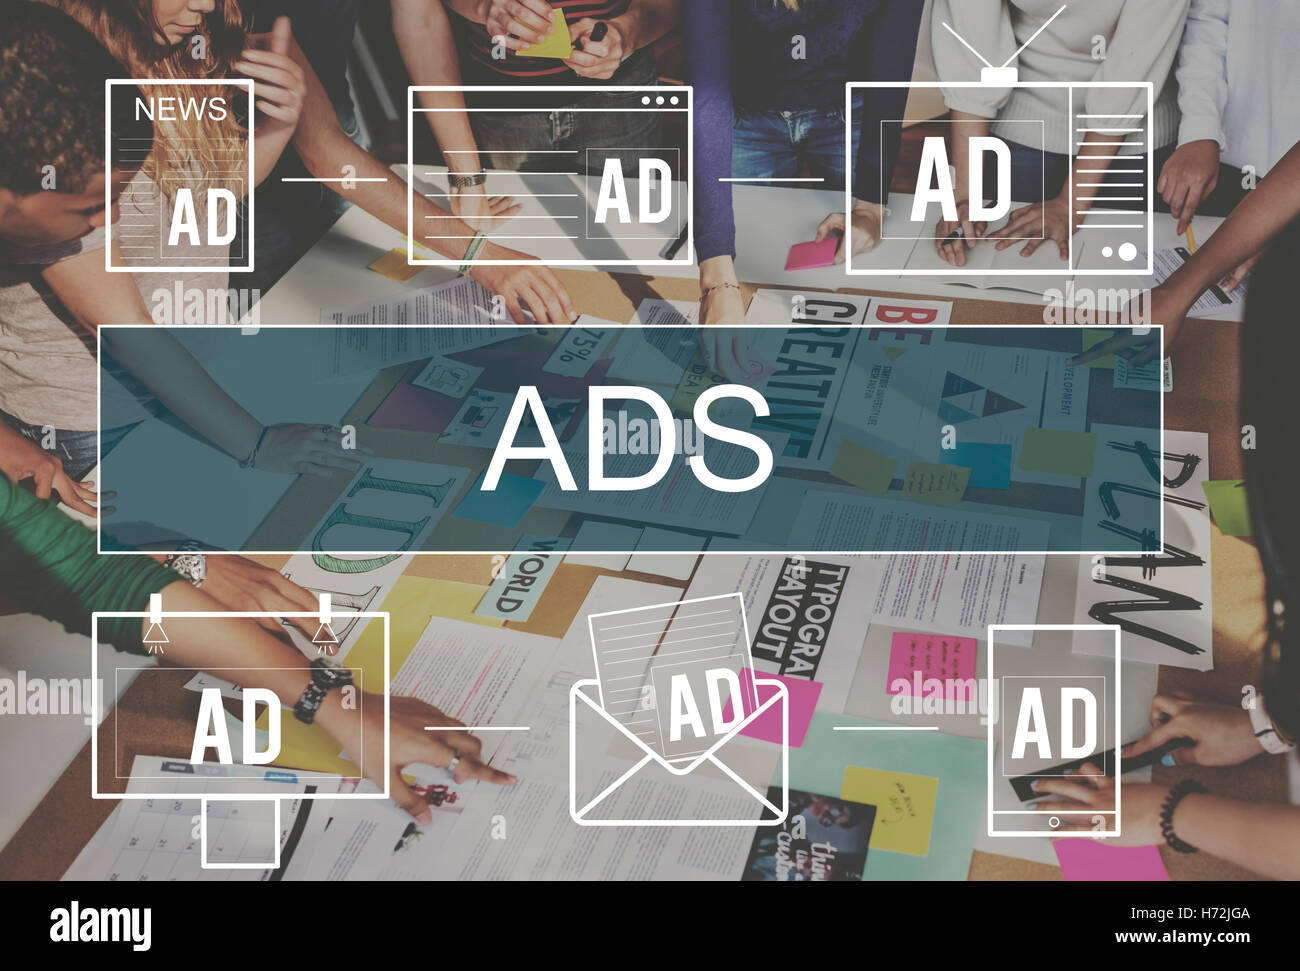 Advertisement ADS Commercial Marketing Advertising Branding Concept - Stock Image